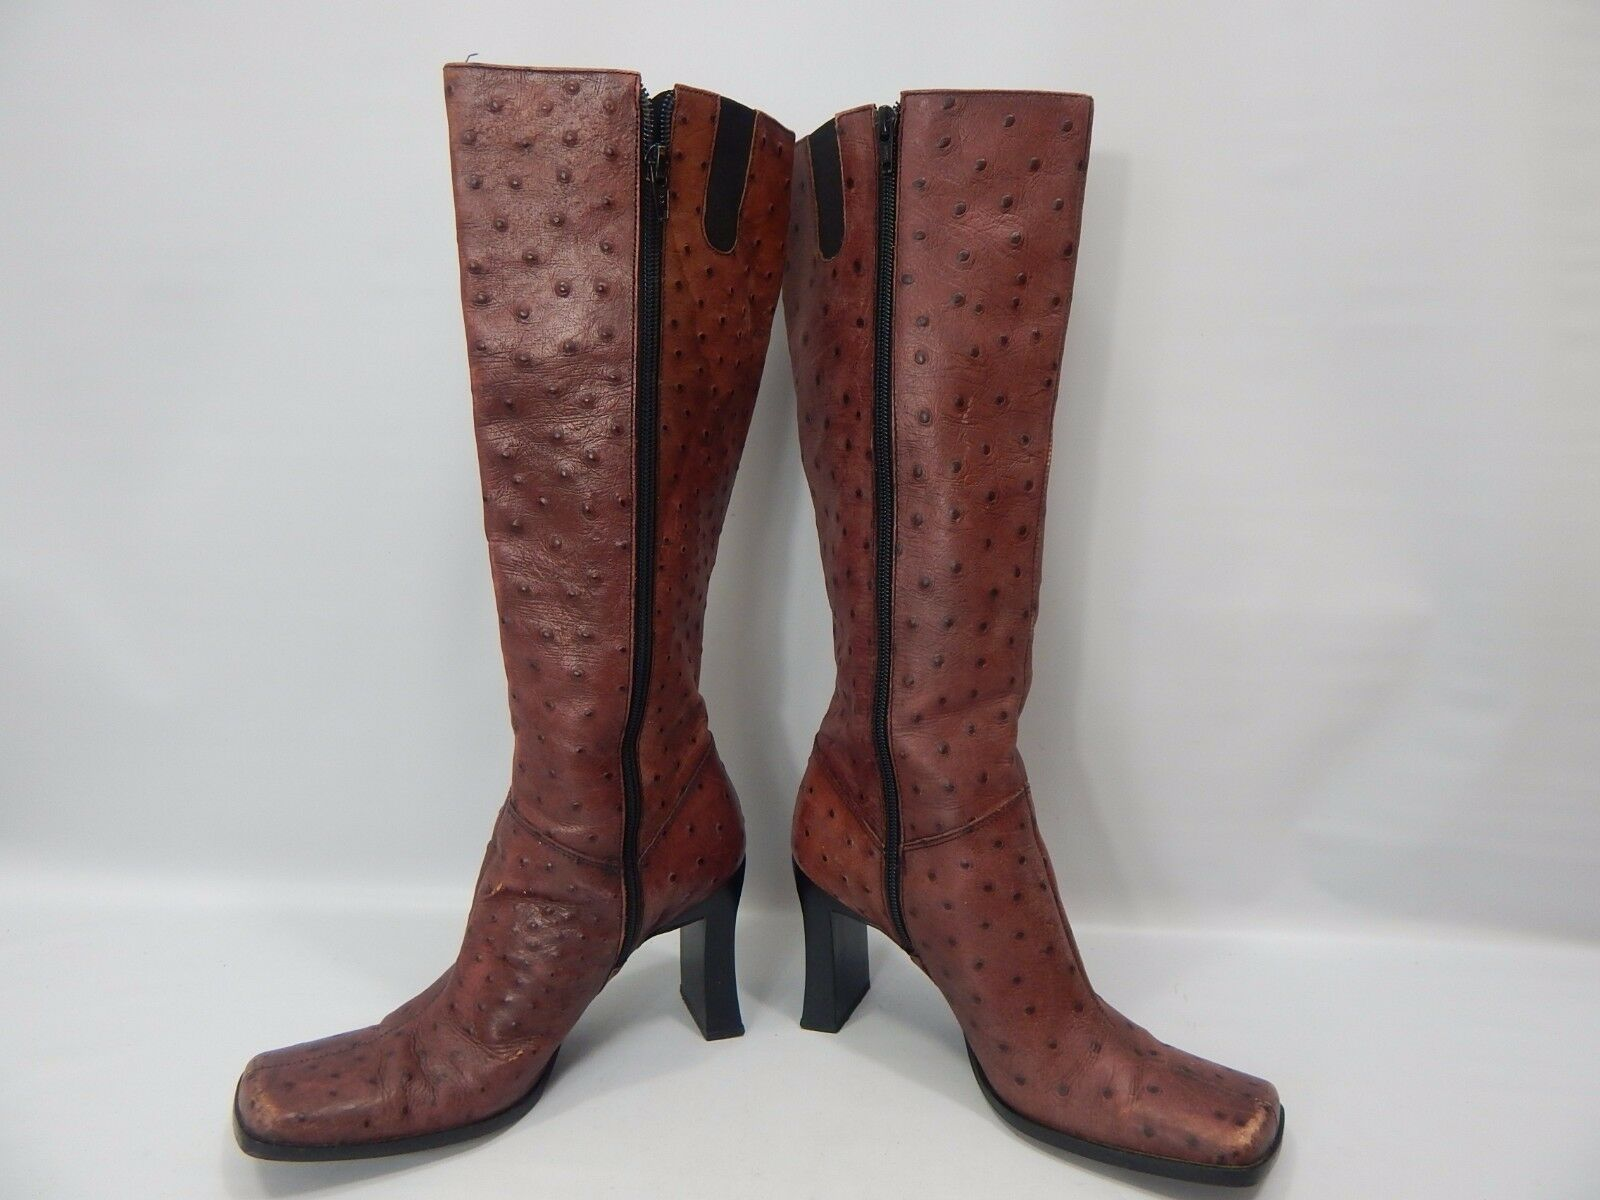 Meyer Knee Brazil Burgundy Ostrich Leather Knee Meyer High Heel Boots size 7.5M Square Toe b166db